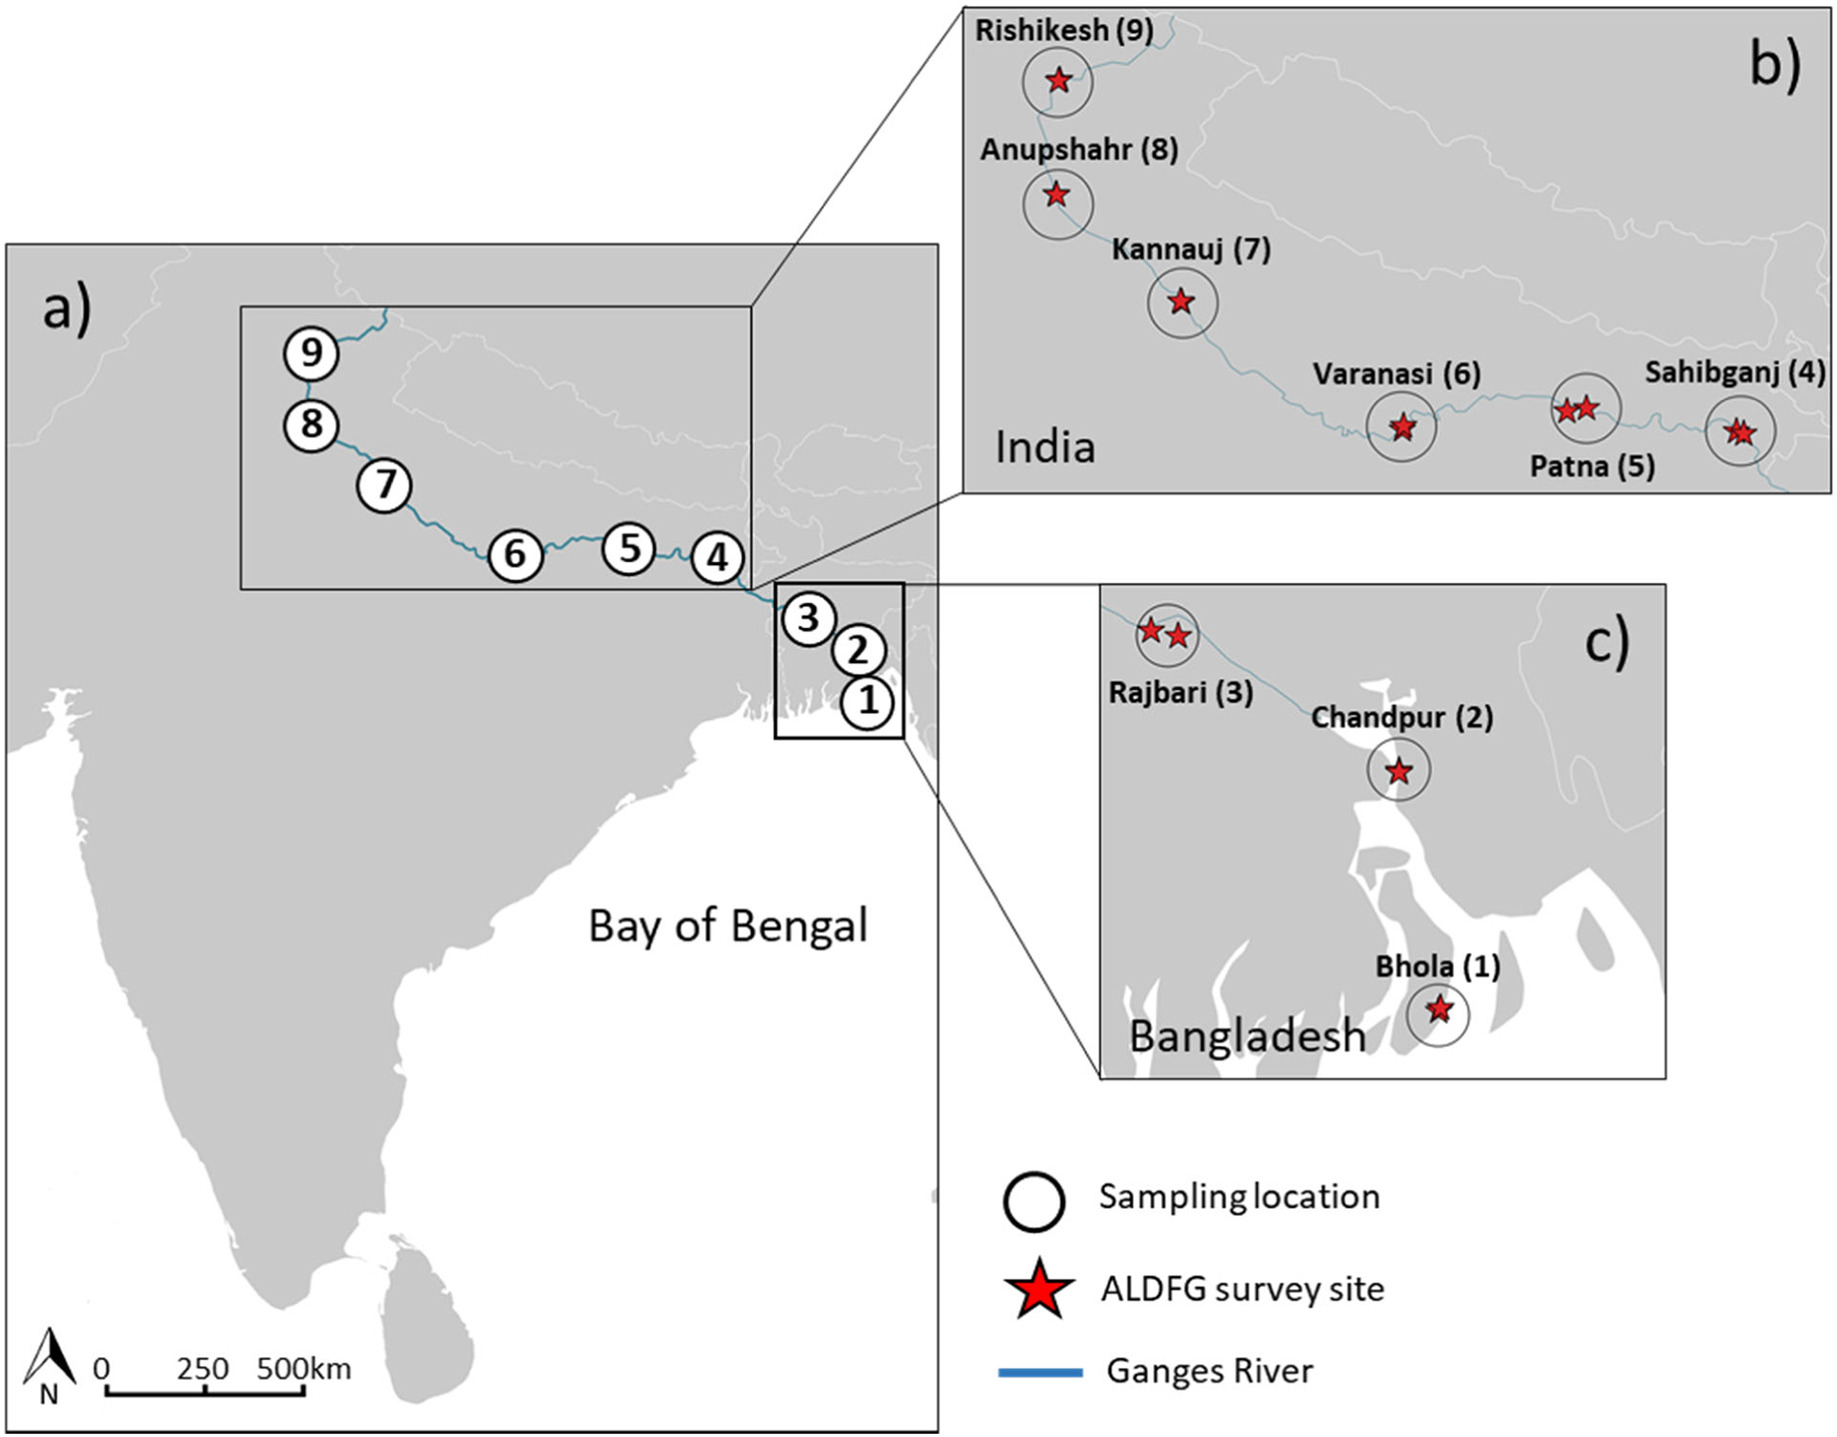 Maps showing a) expedition sampling locations (numbered 1–9) and fish landing sites (red star symbols) where waste fishing gear surveys took place in b) India and c) Bangladesh. The Ganges is depicted in blue. Photo from study.